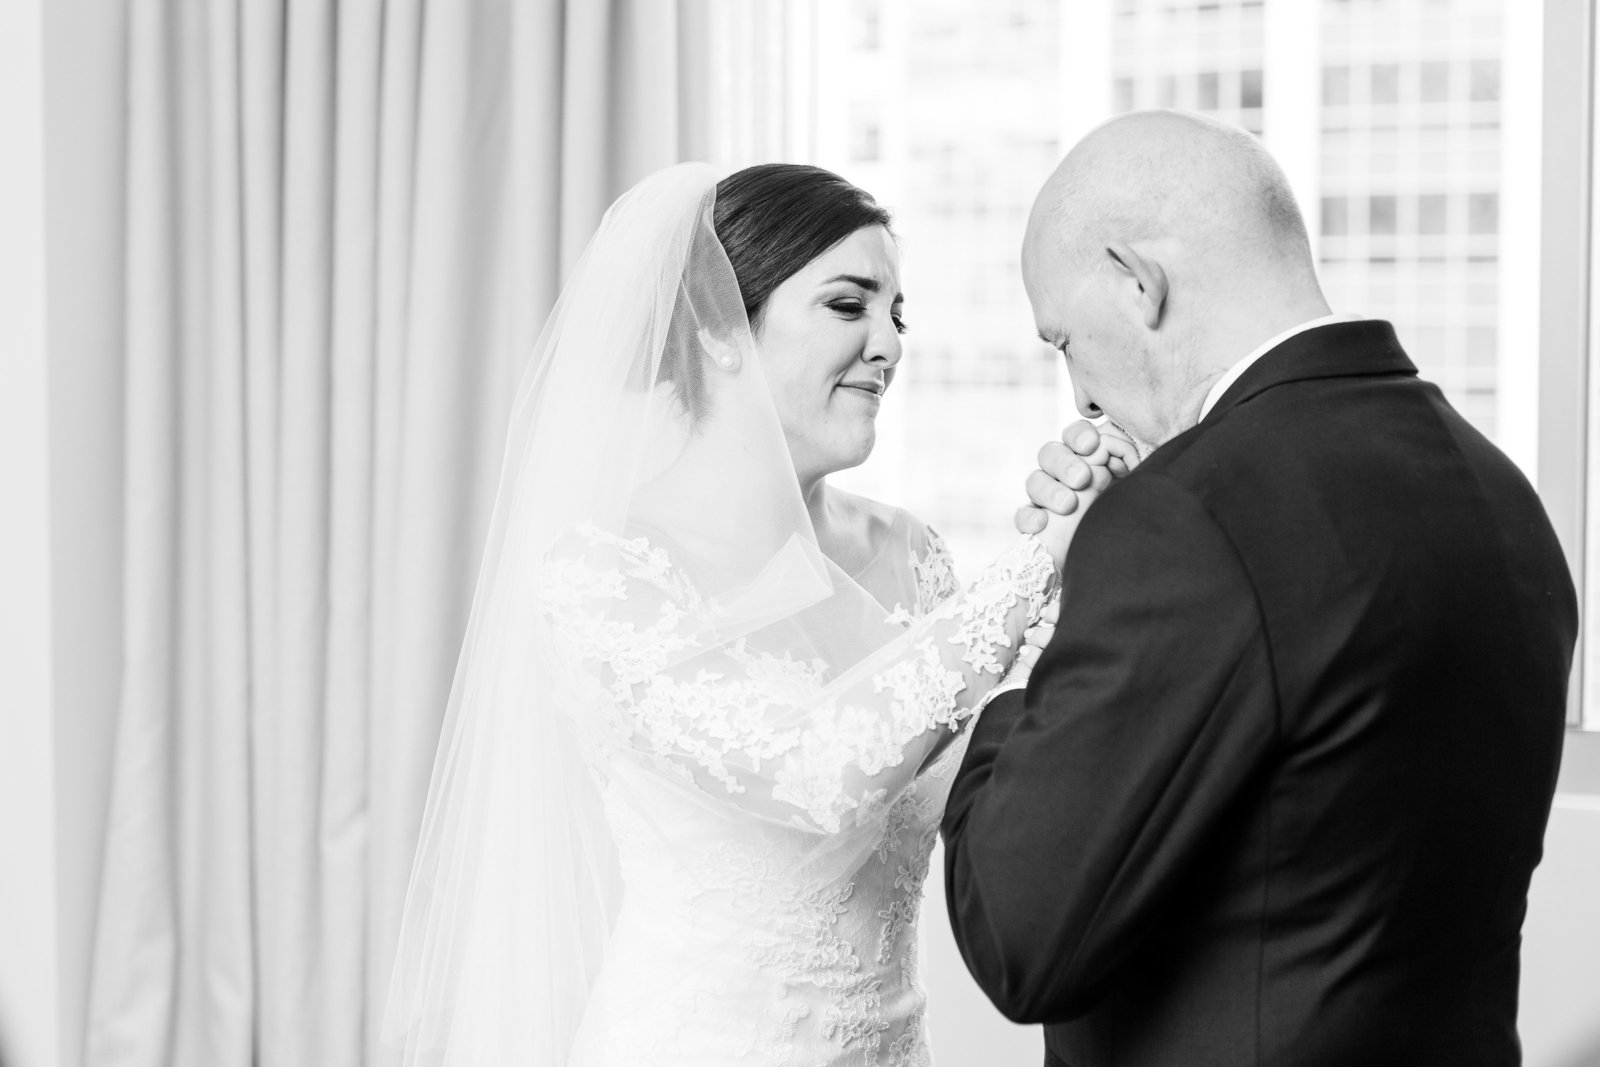 orlando-Florida-estate-Father-of-bride-wedding-dress-chris-sosa-photography-1